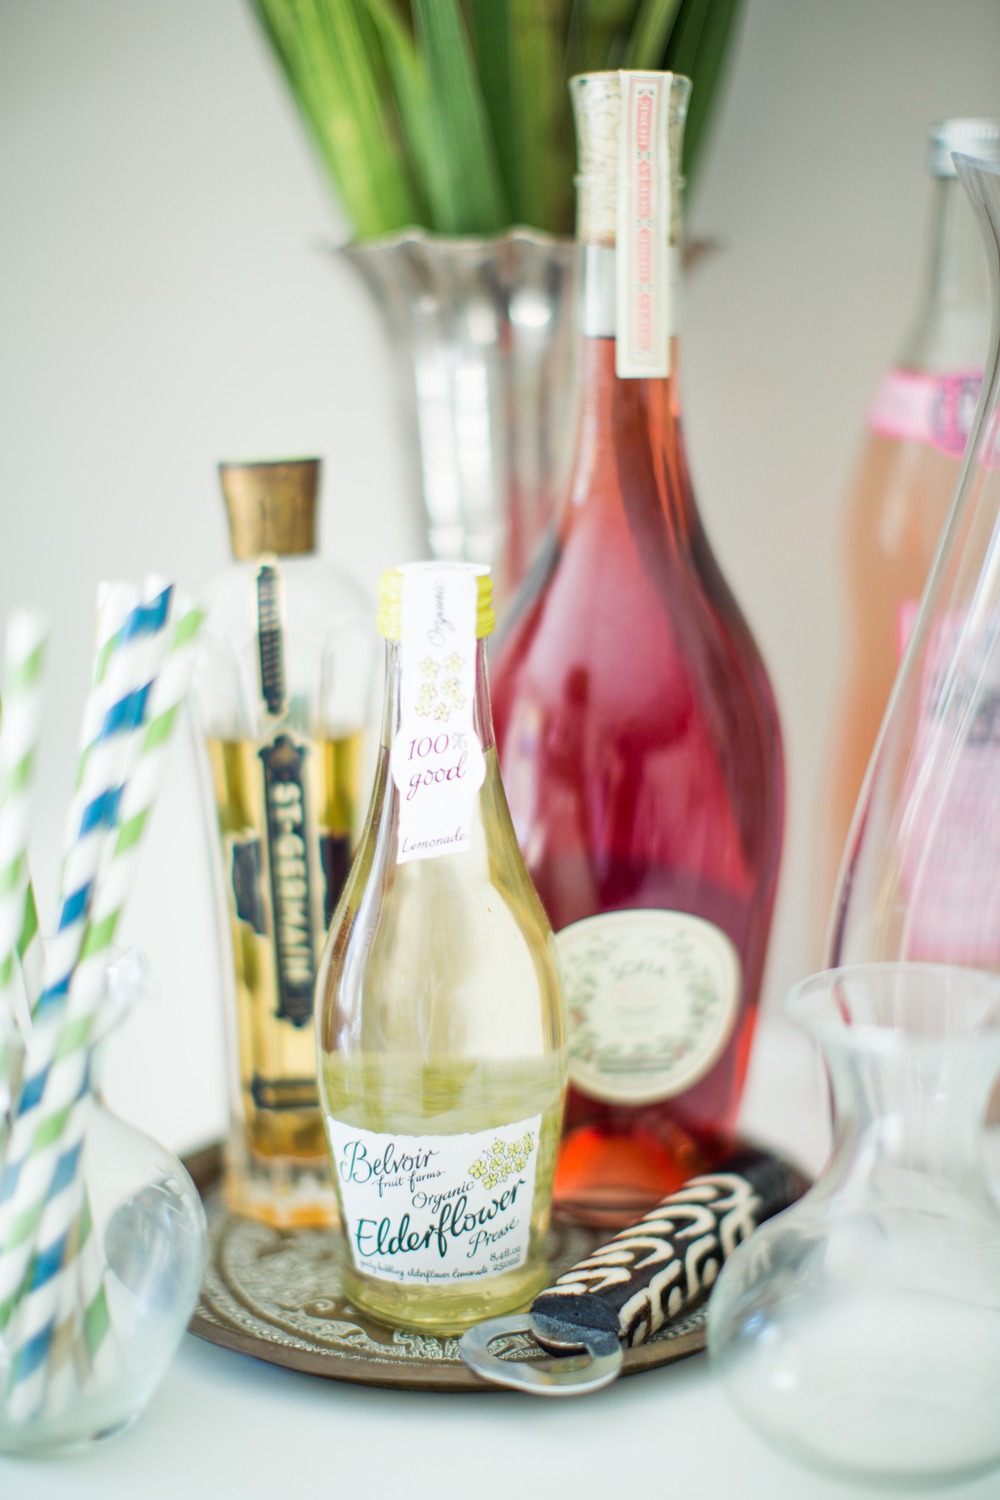 Drink display inspiration | Make Your Own Drink Bar | Southern home style | The School of Styling - theschoolofstyling.com